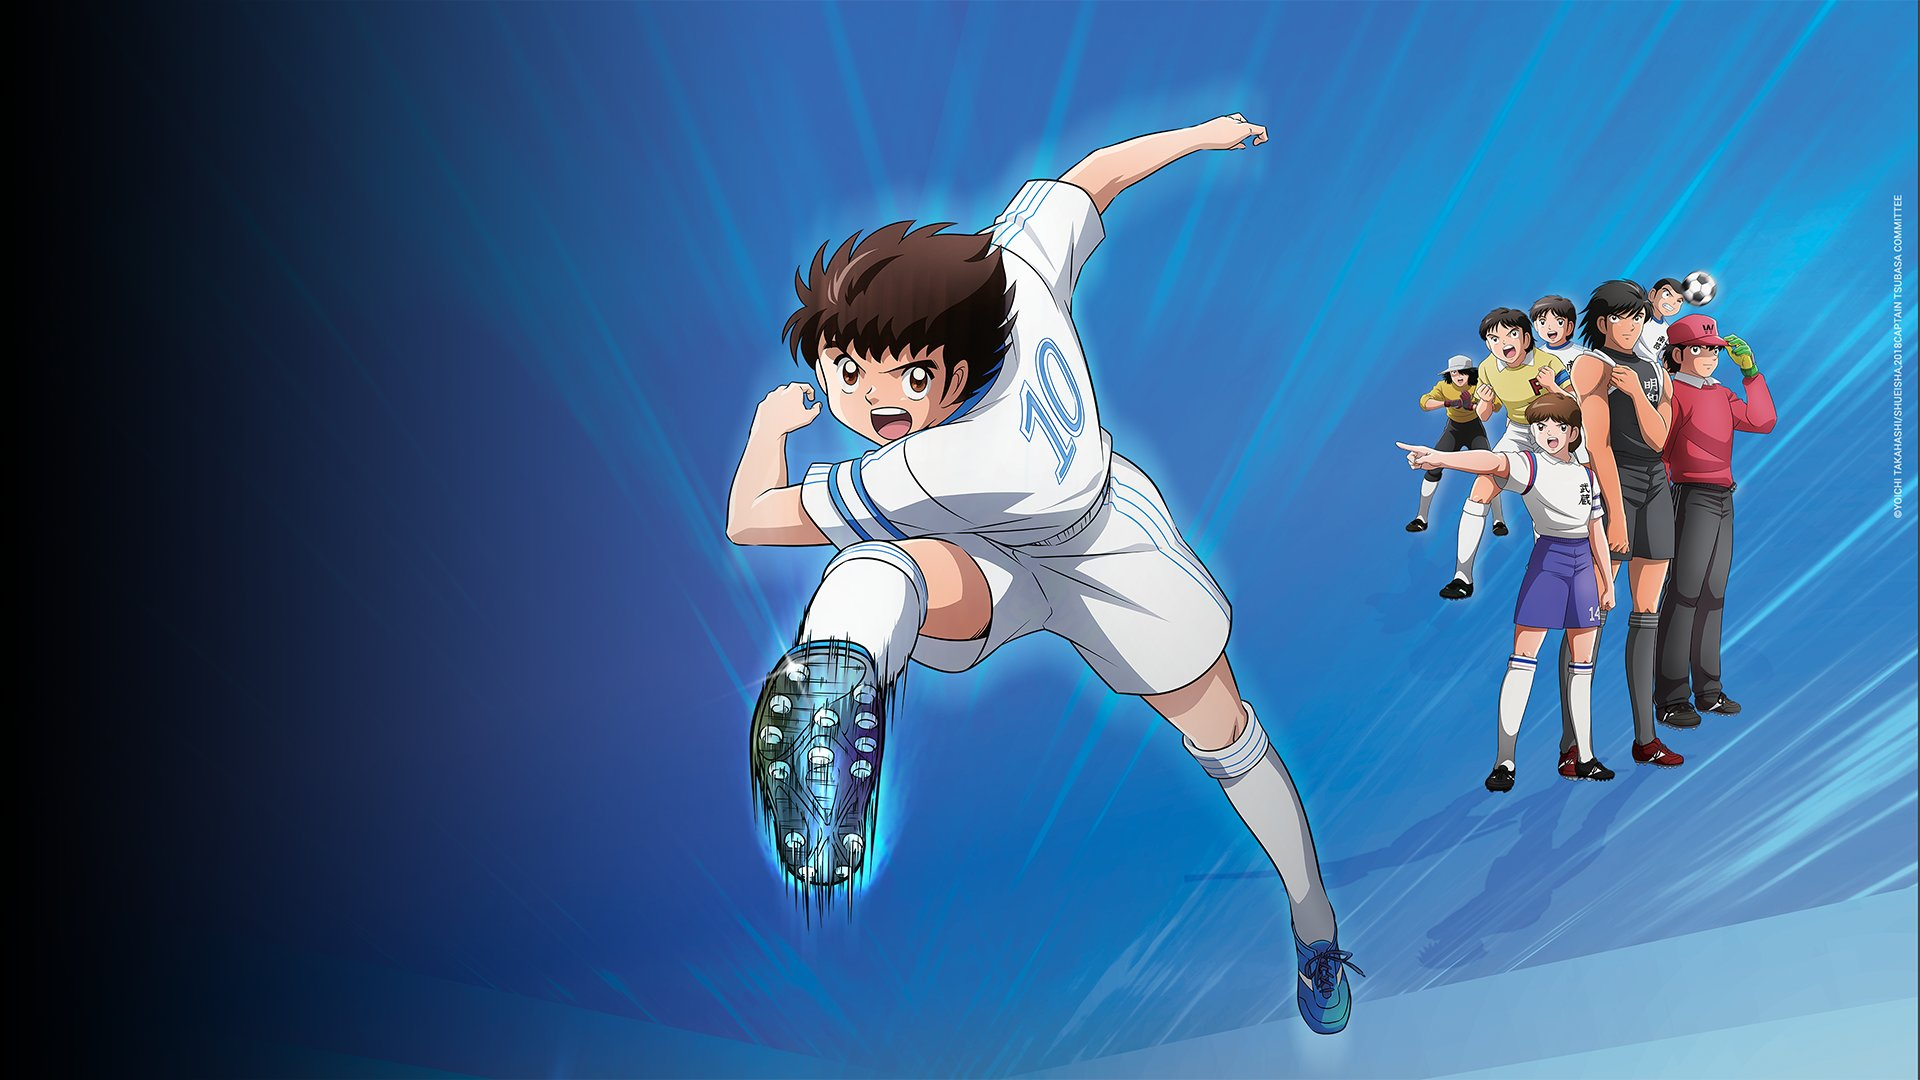 fond Captain Tsubasa - Episode 16  - Un Football acrobatique !